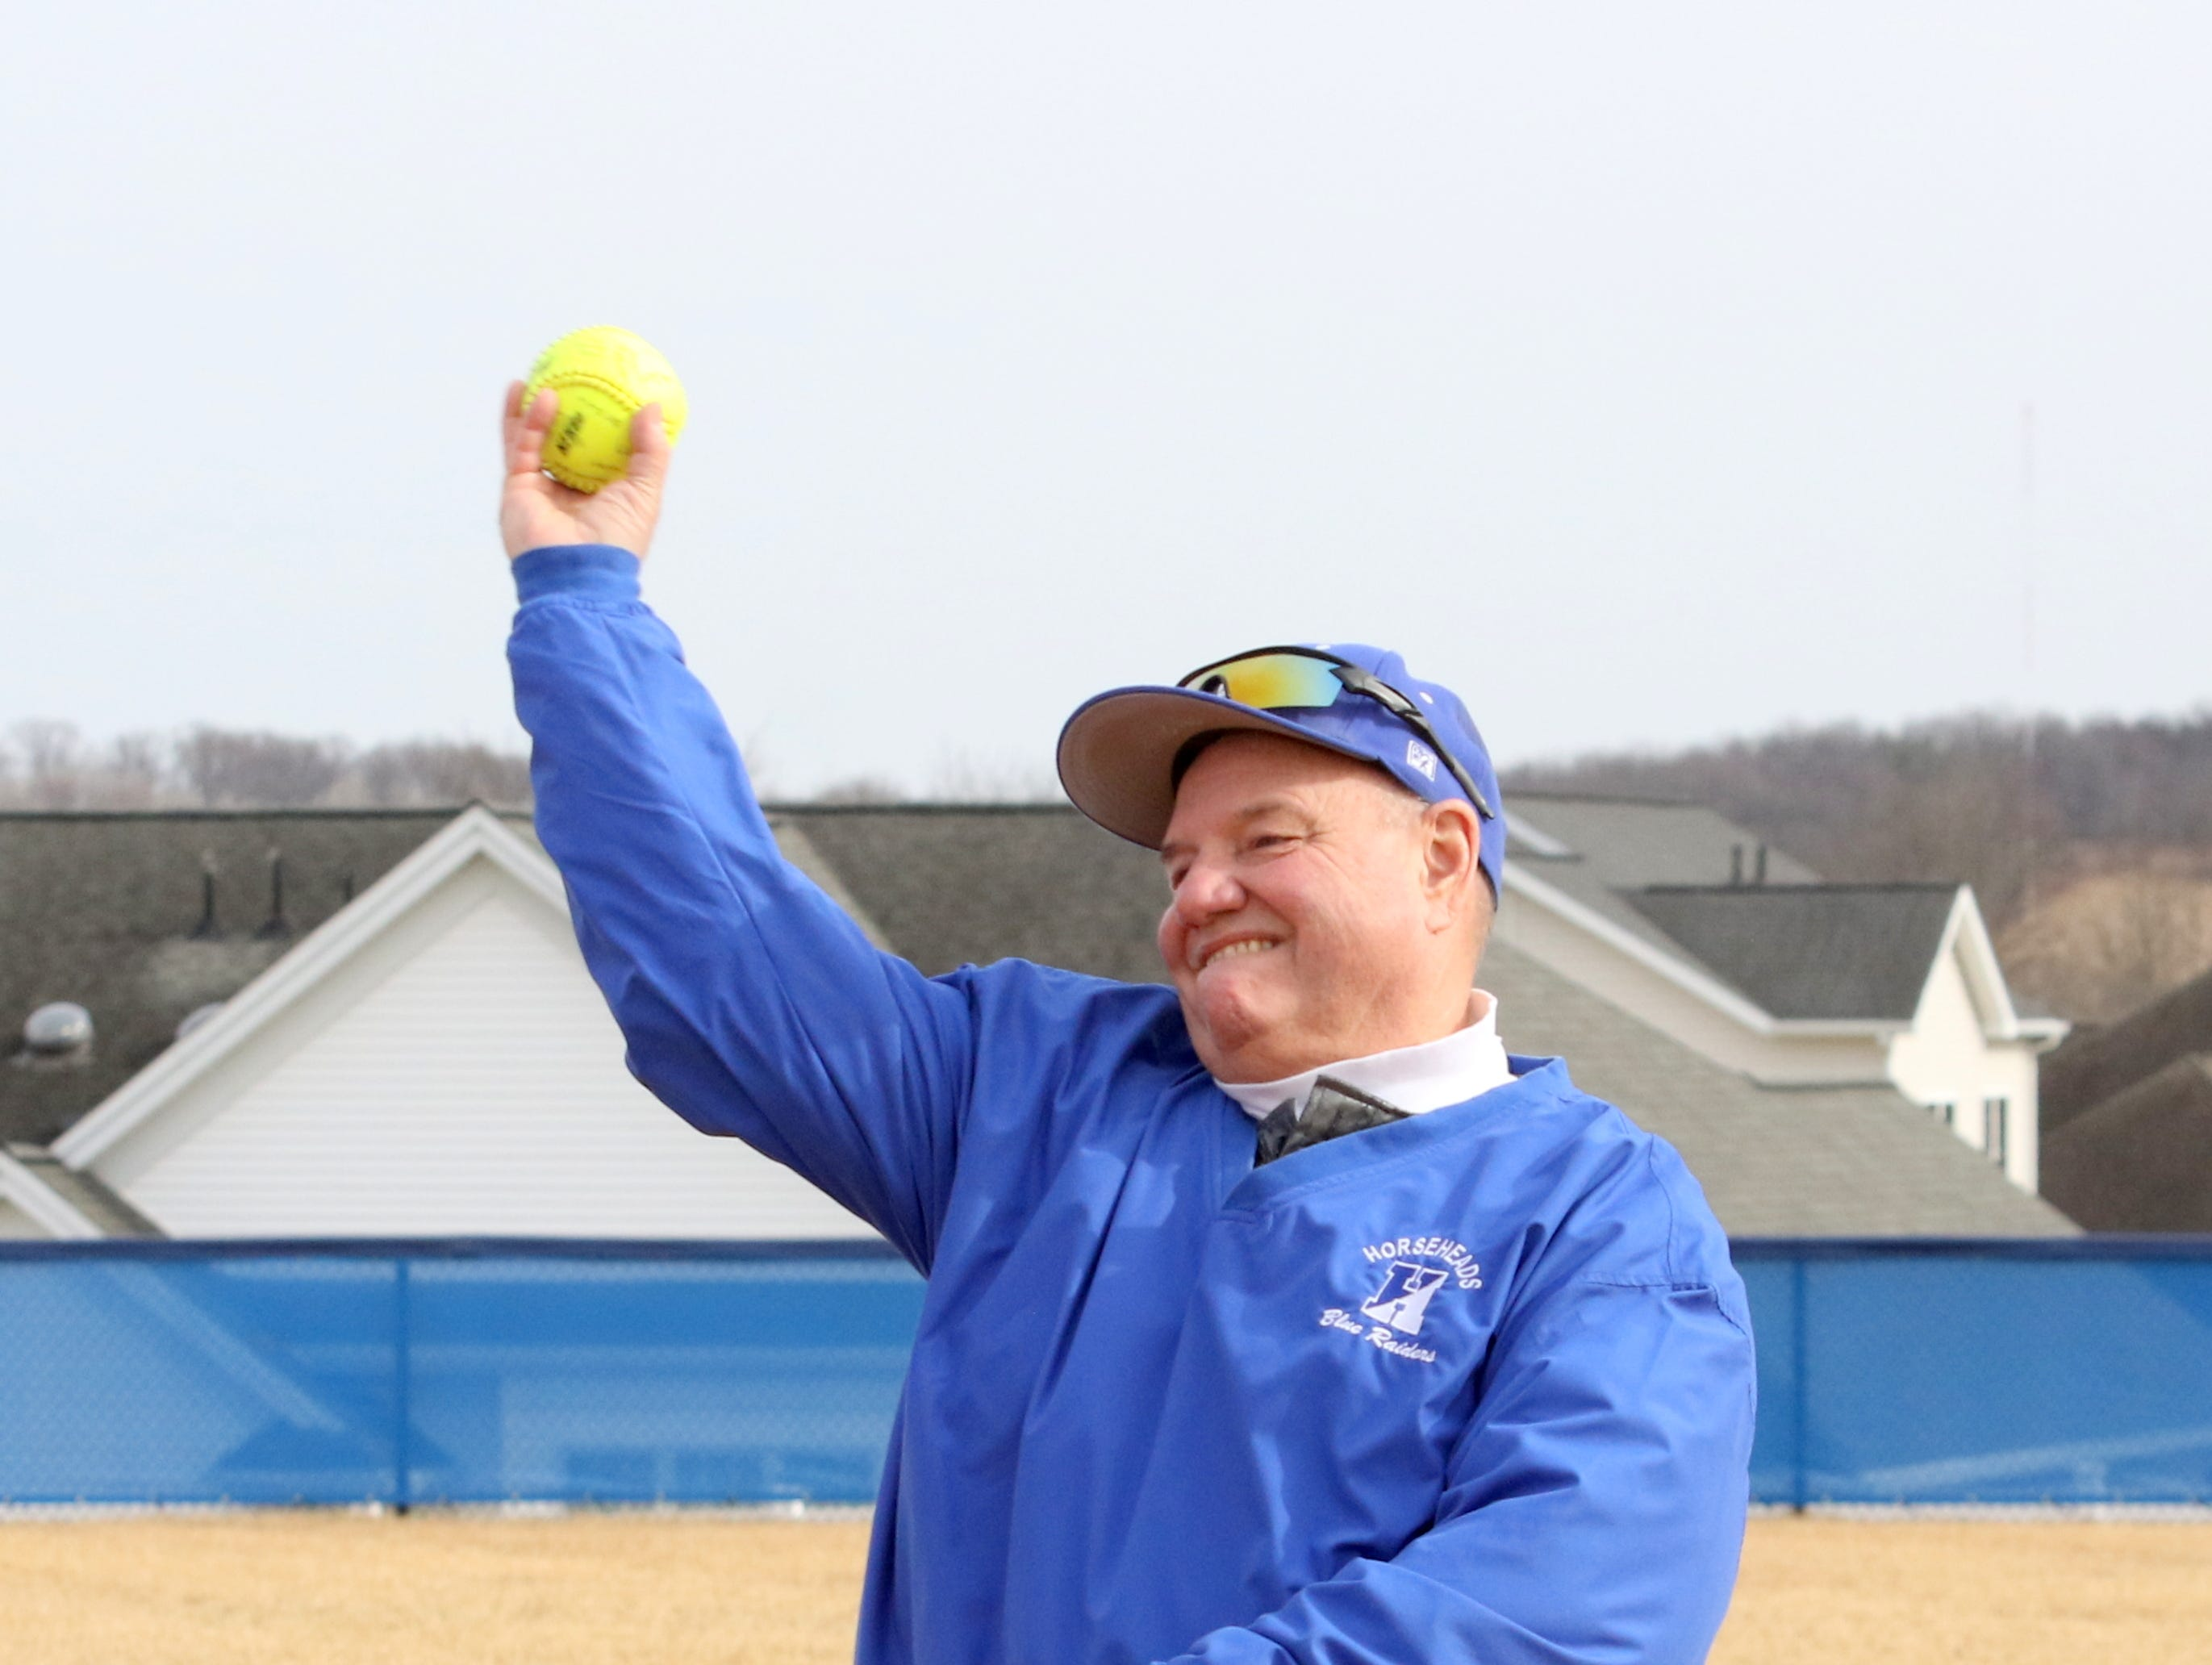 Retired Horseheads softball coach Warren Conklin throws out the ceremonial first pitch before Owego at Horseheads softball April 4, 2019 at Horseheads Middle School.